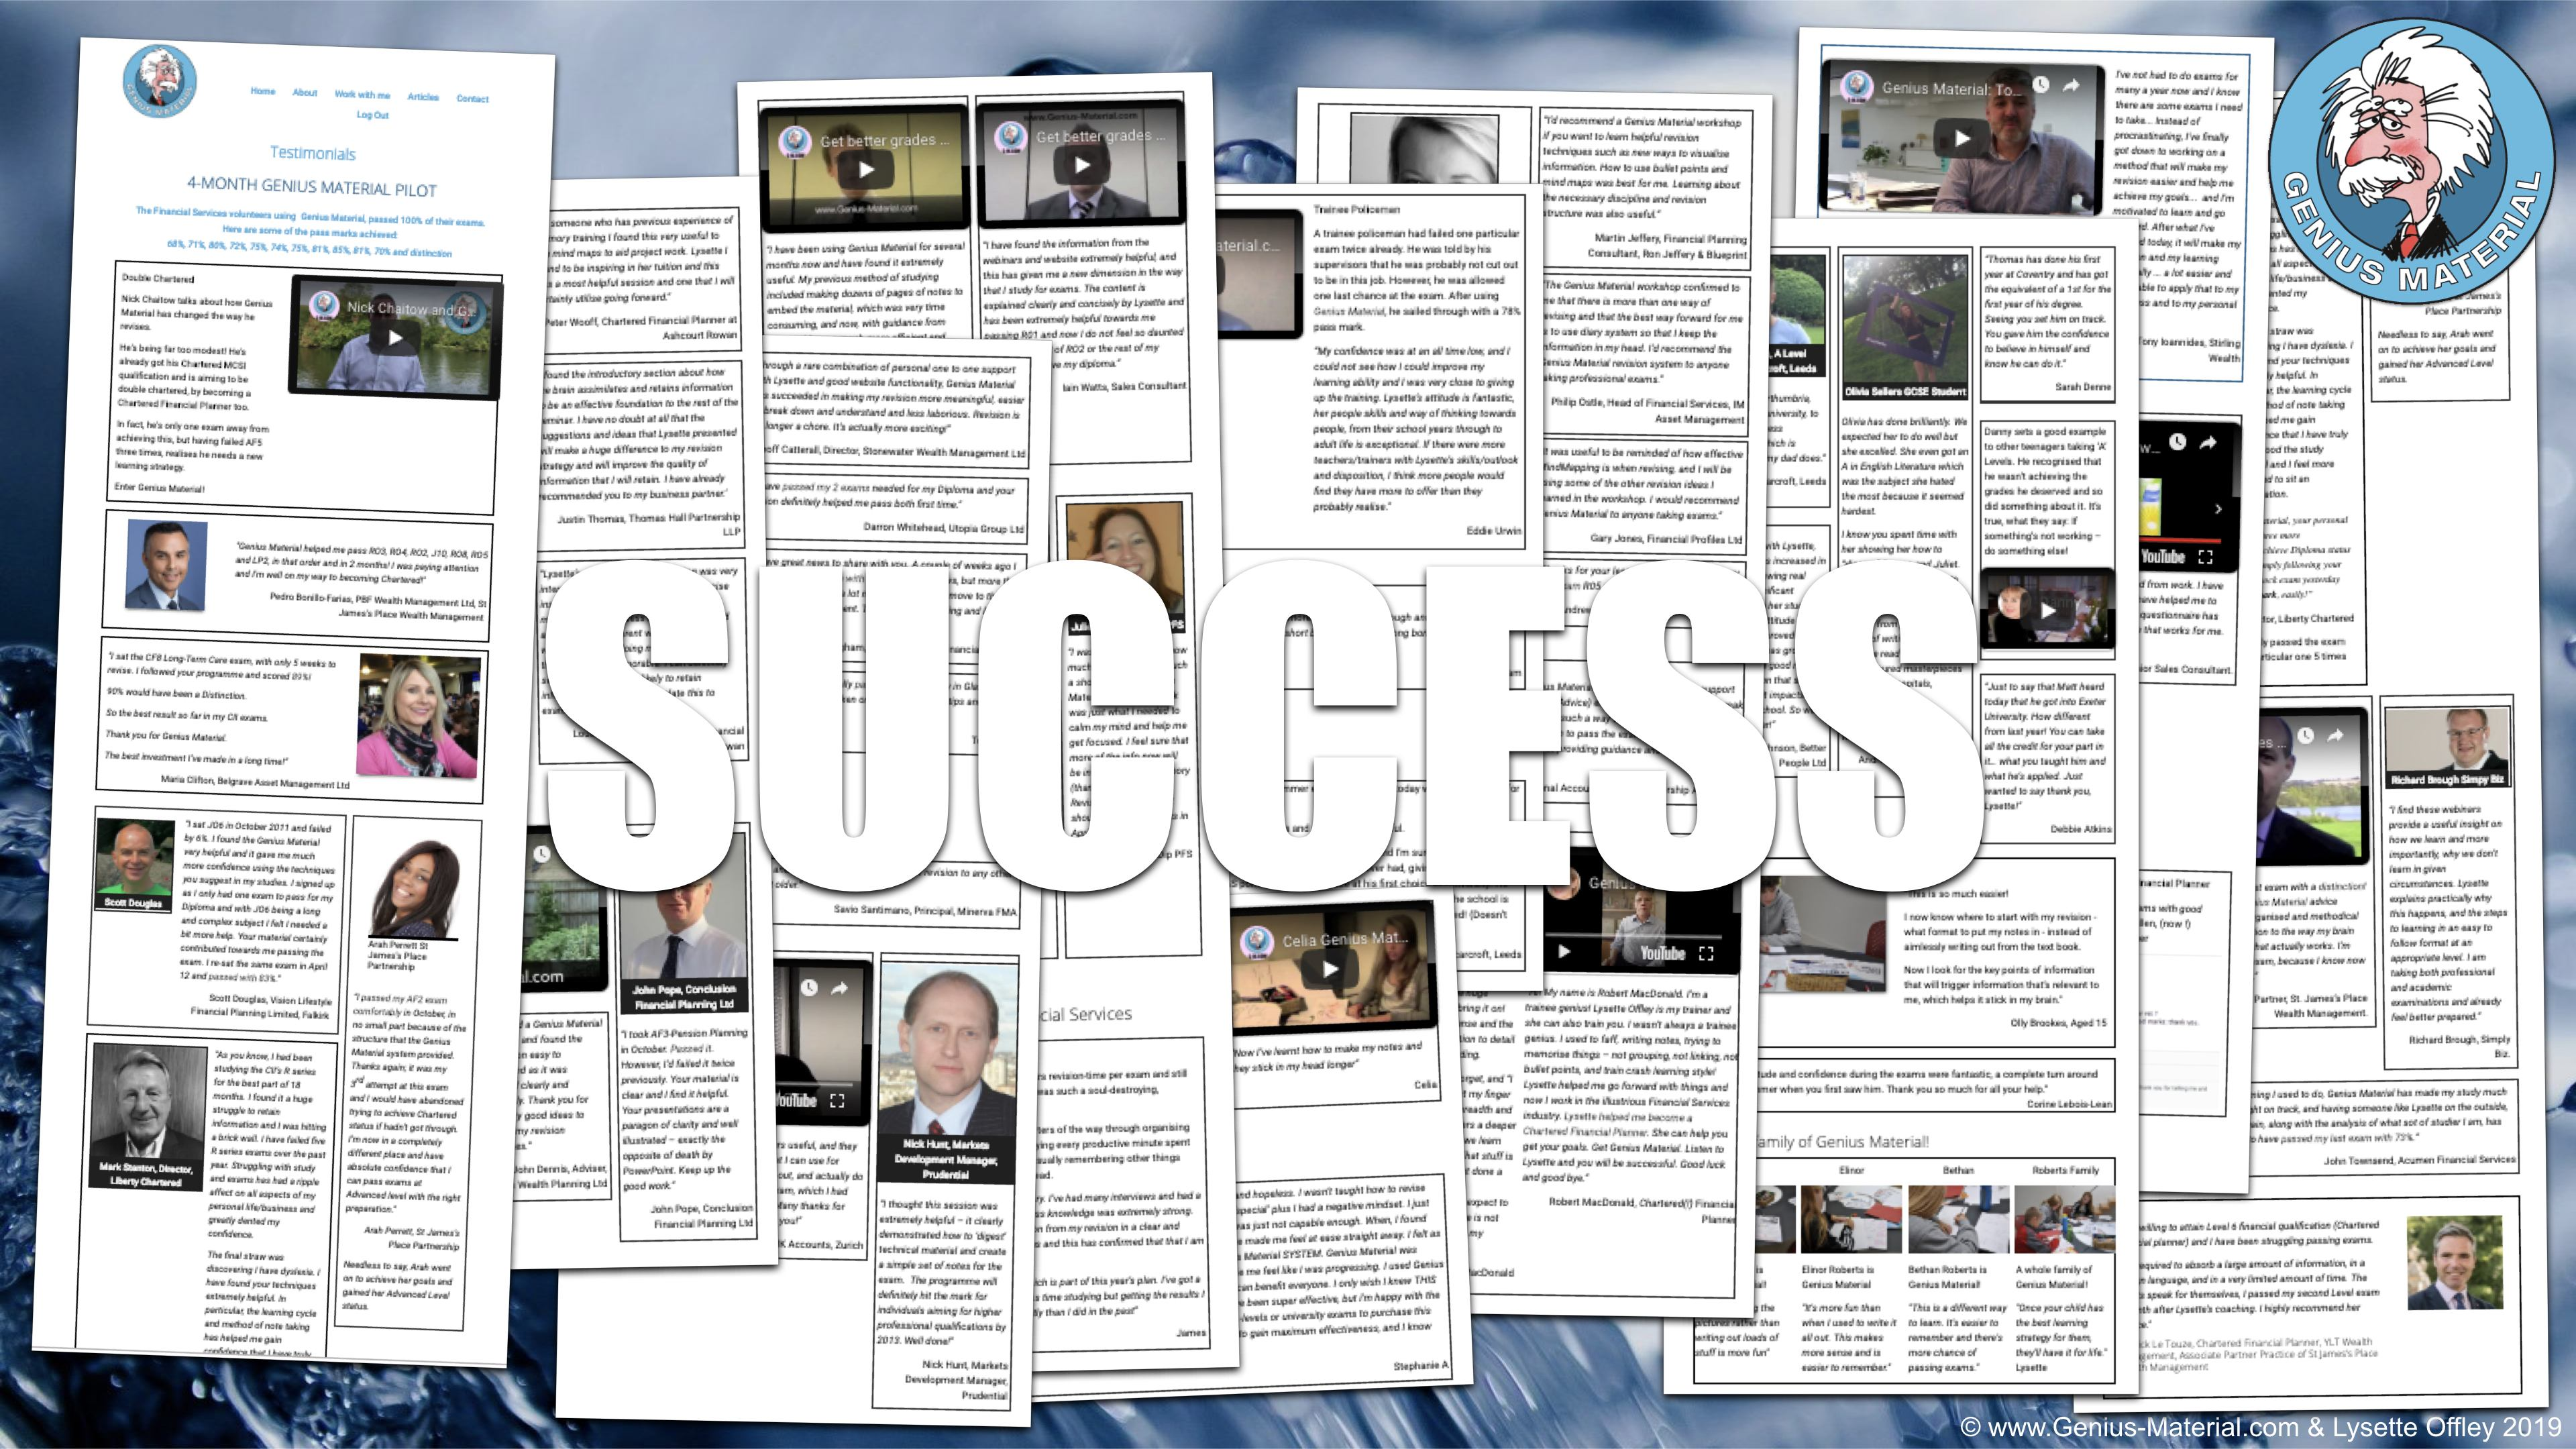 pass Diploma and Chartered Financial exams - success stories